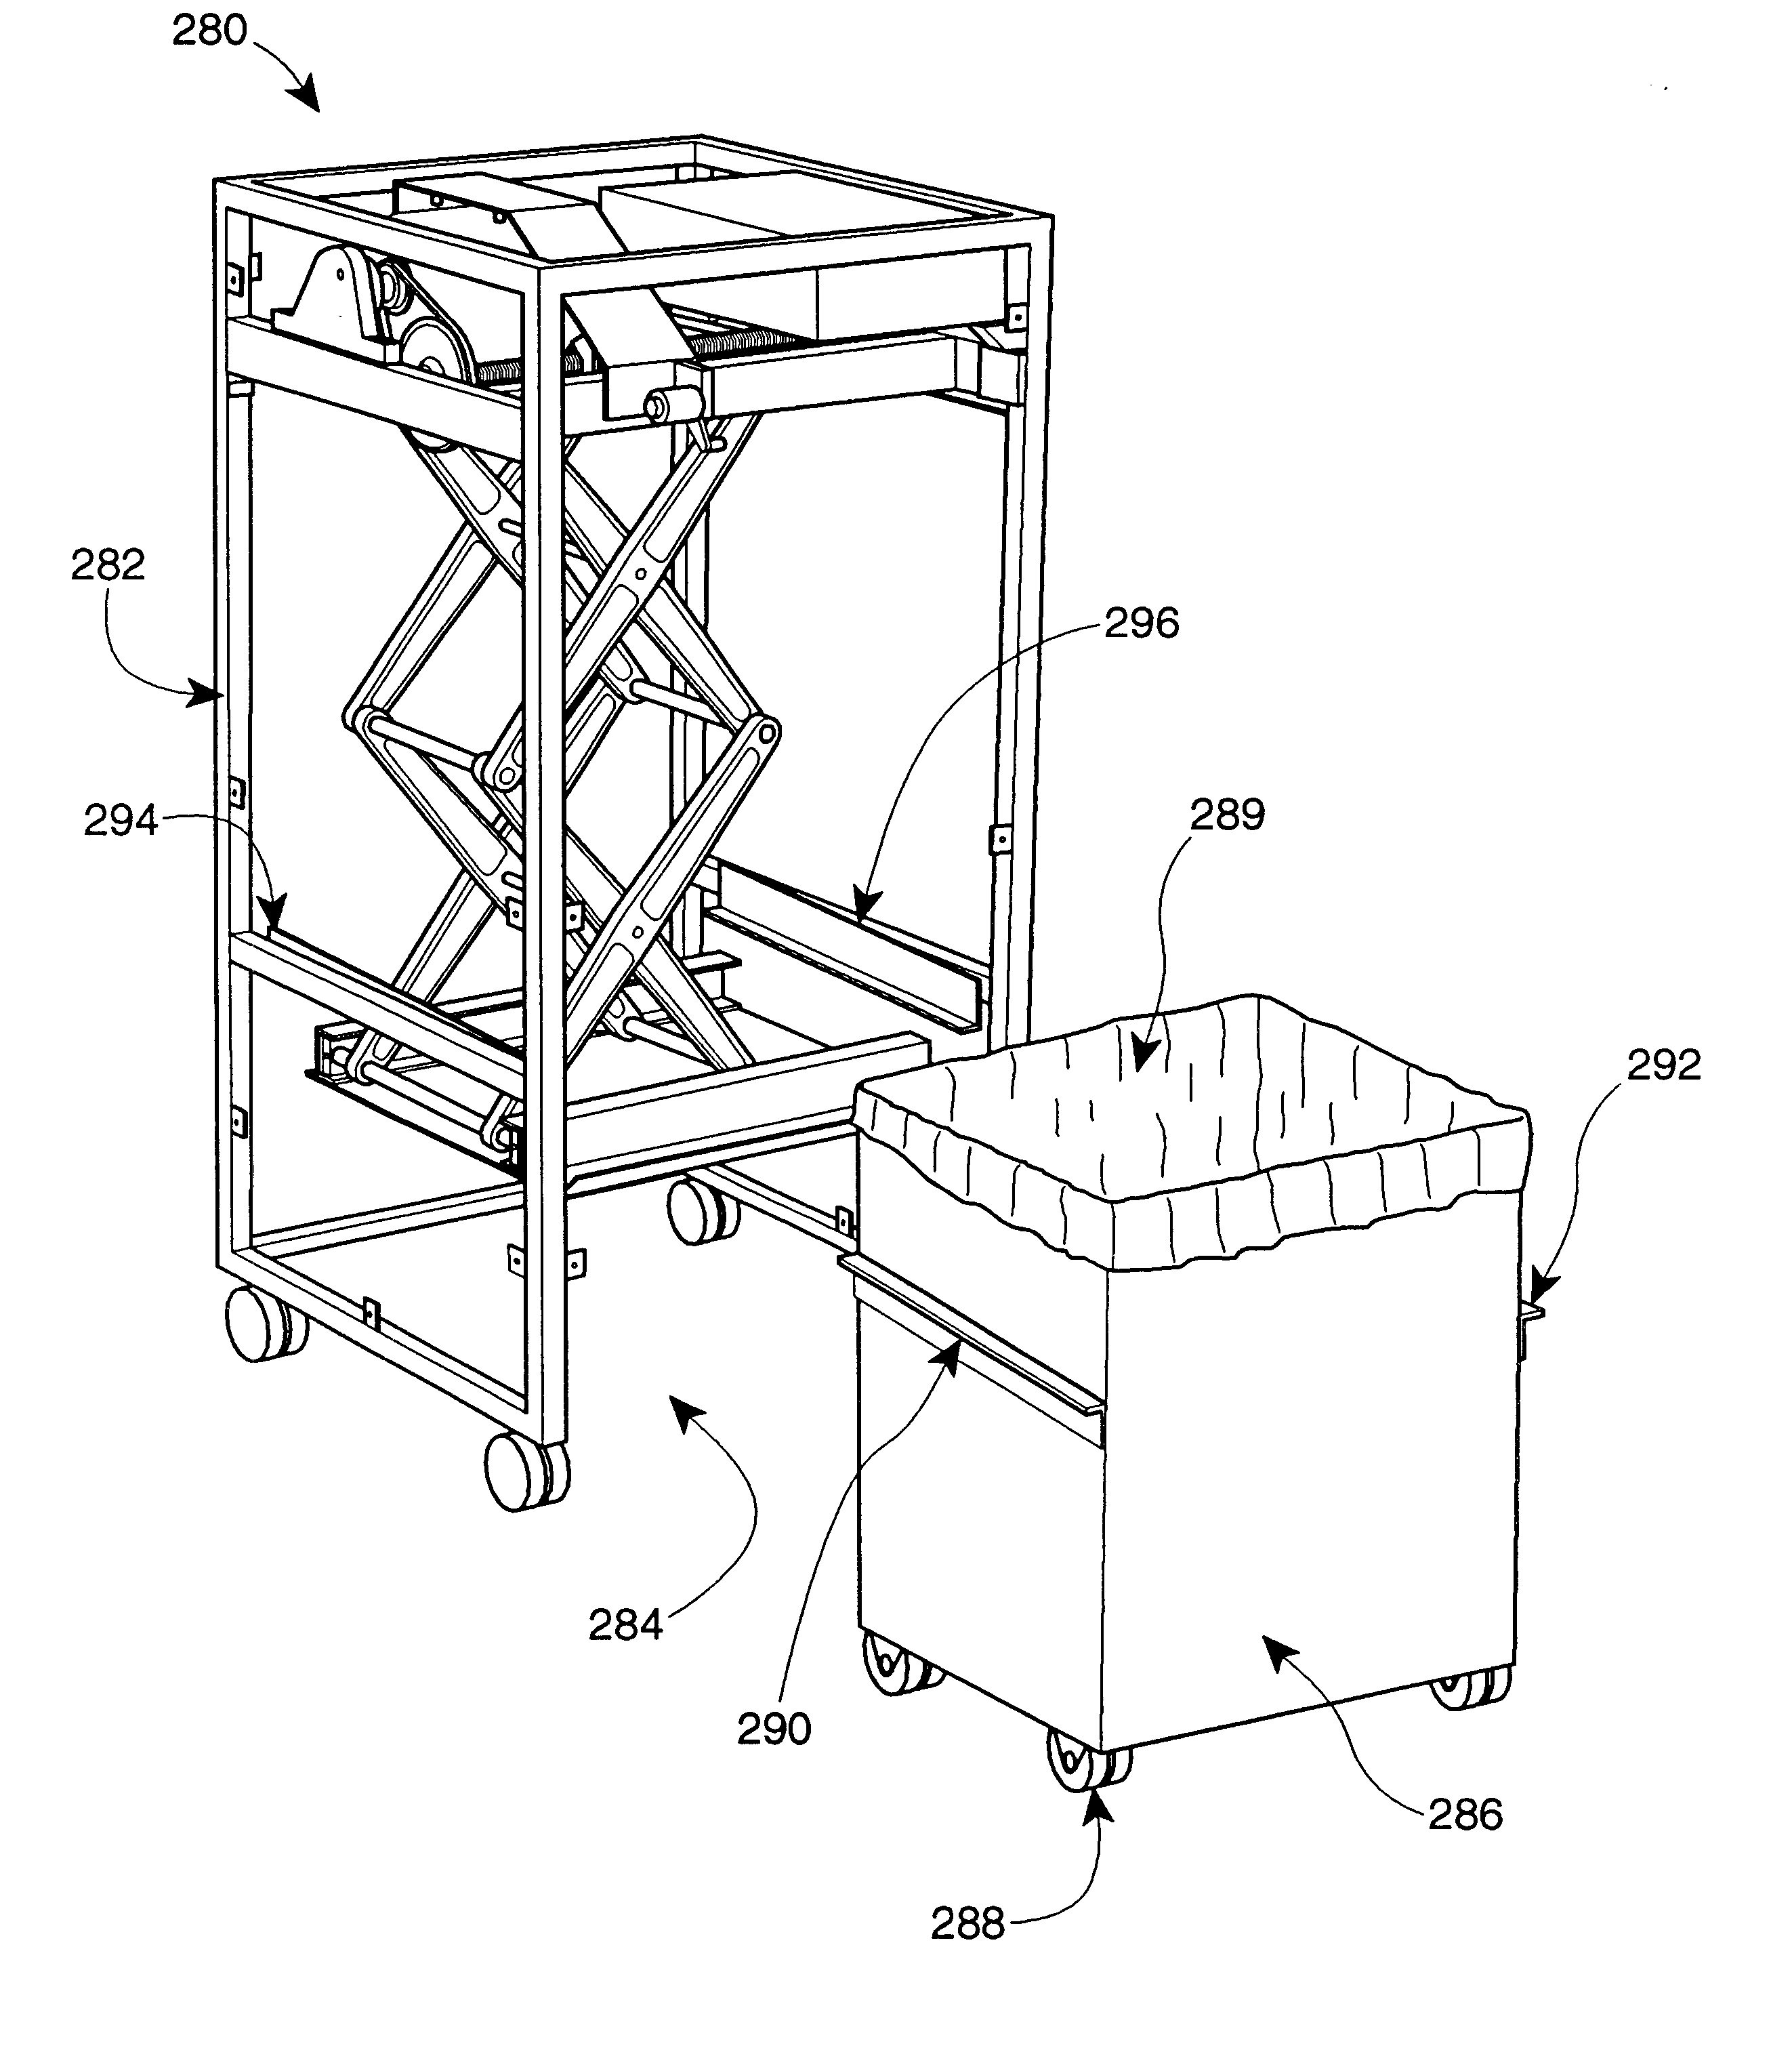 How Does A Trash Compactor Work Patent Us6367377 Level Sensitive Waste Compactor Google Patents